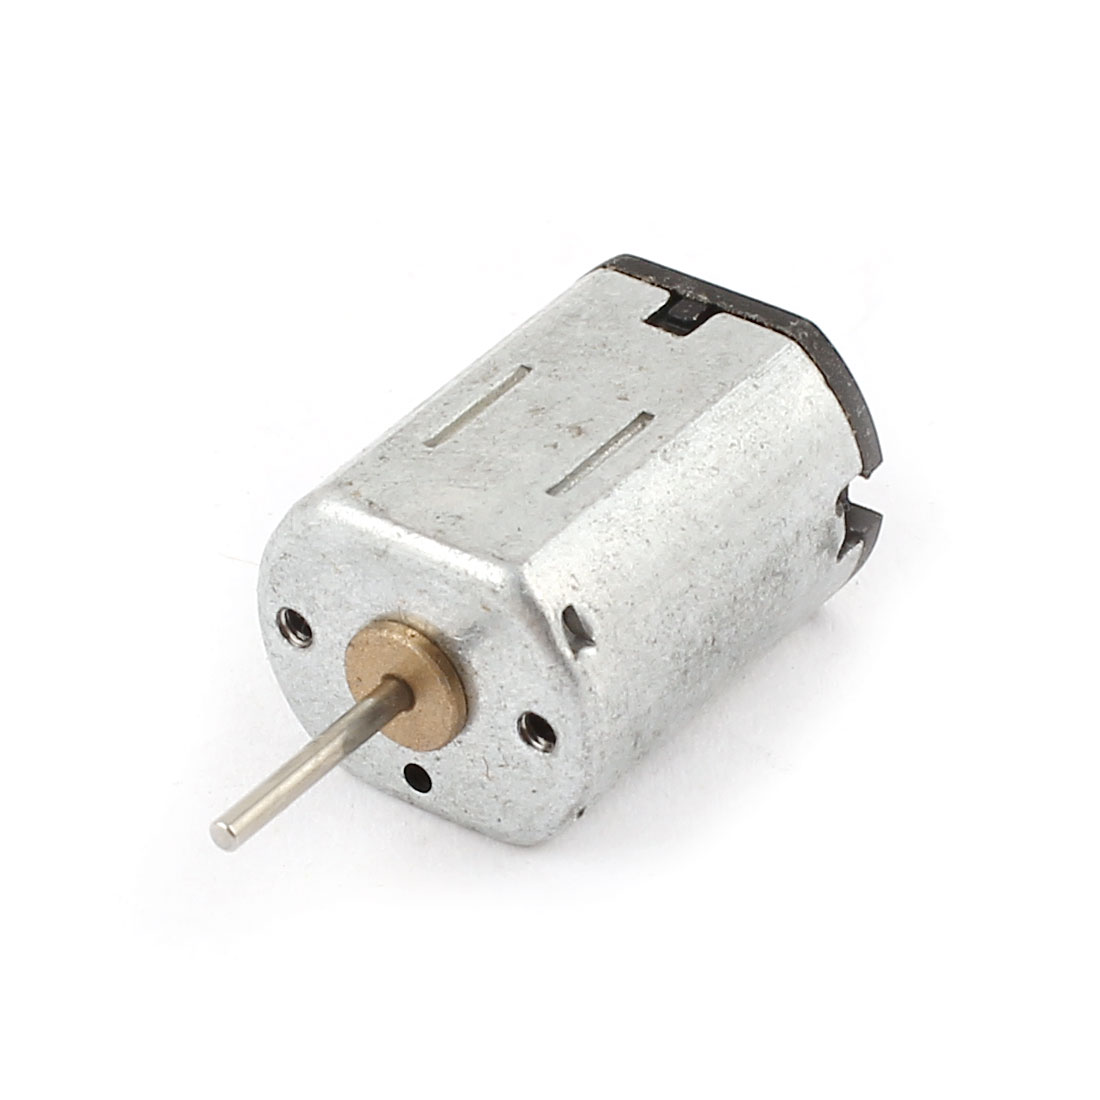 28000RPM Speed DC 7.4V Tail Motor for RC Model KZ999-777/888 Aircraft Airplane